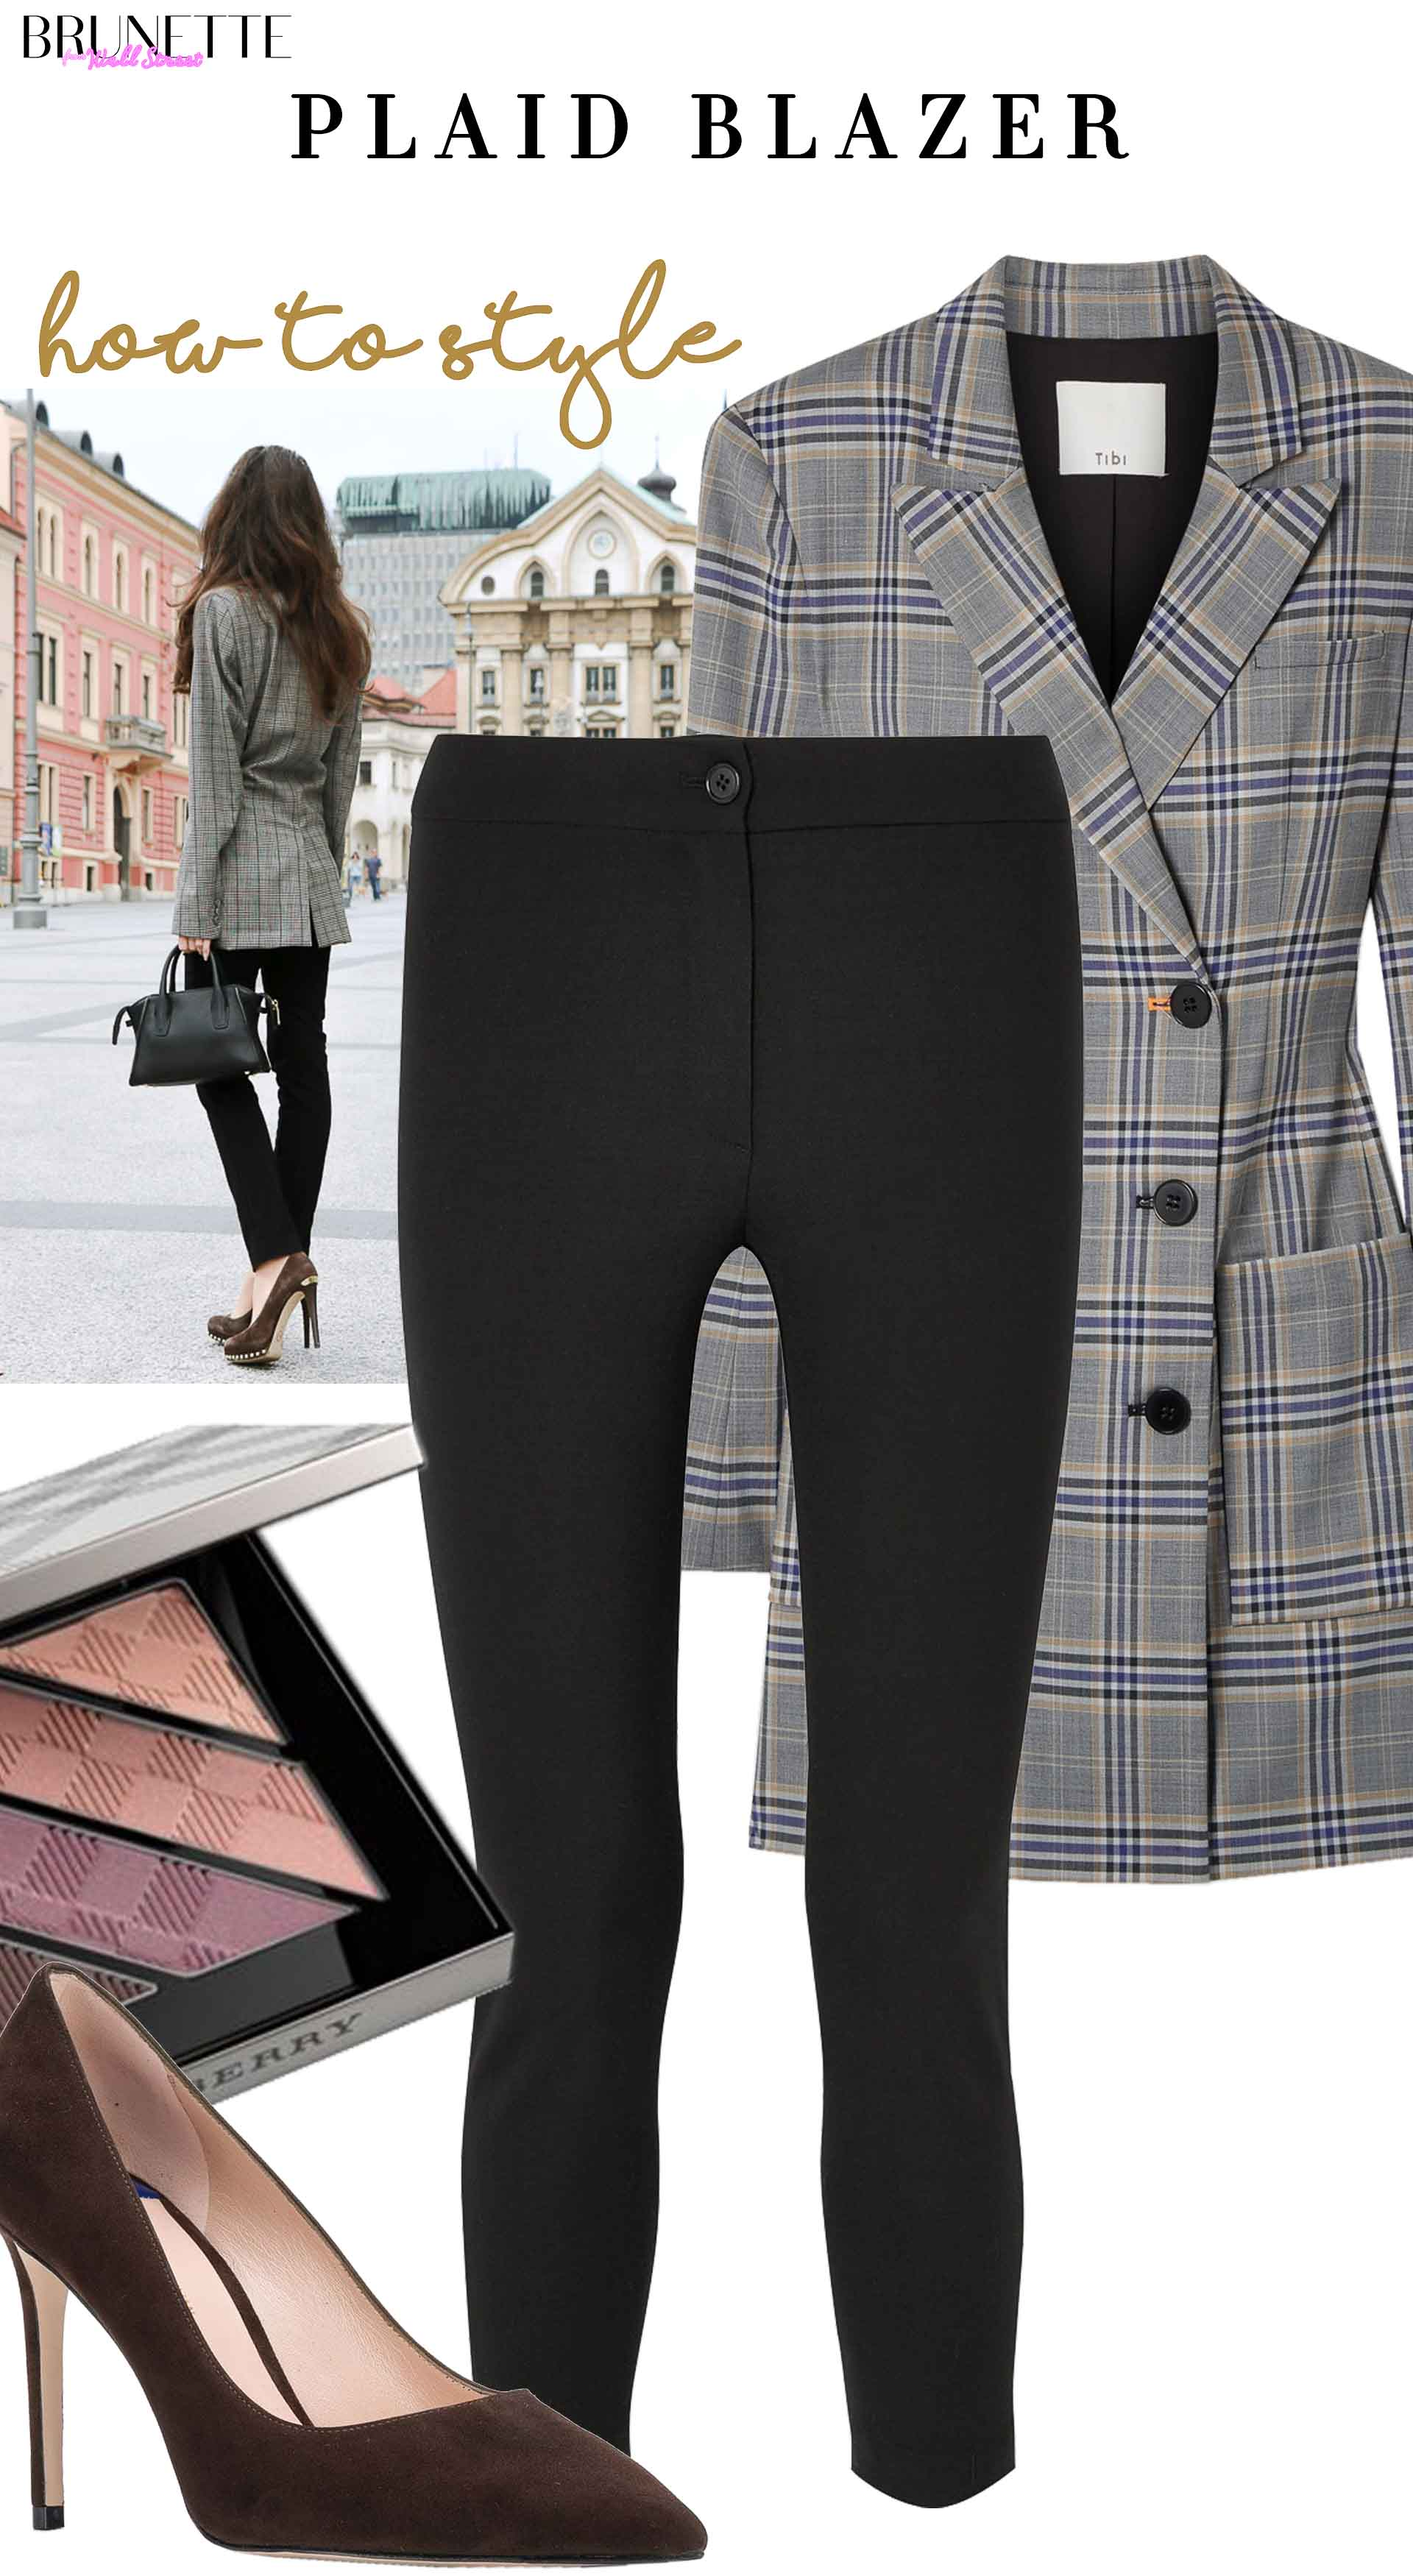 wool slim leg pants, Stuart Weitzman brown court shoes, Burberry eye shadows, double breasted plaid blazer with text overlay how to style paid blazer